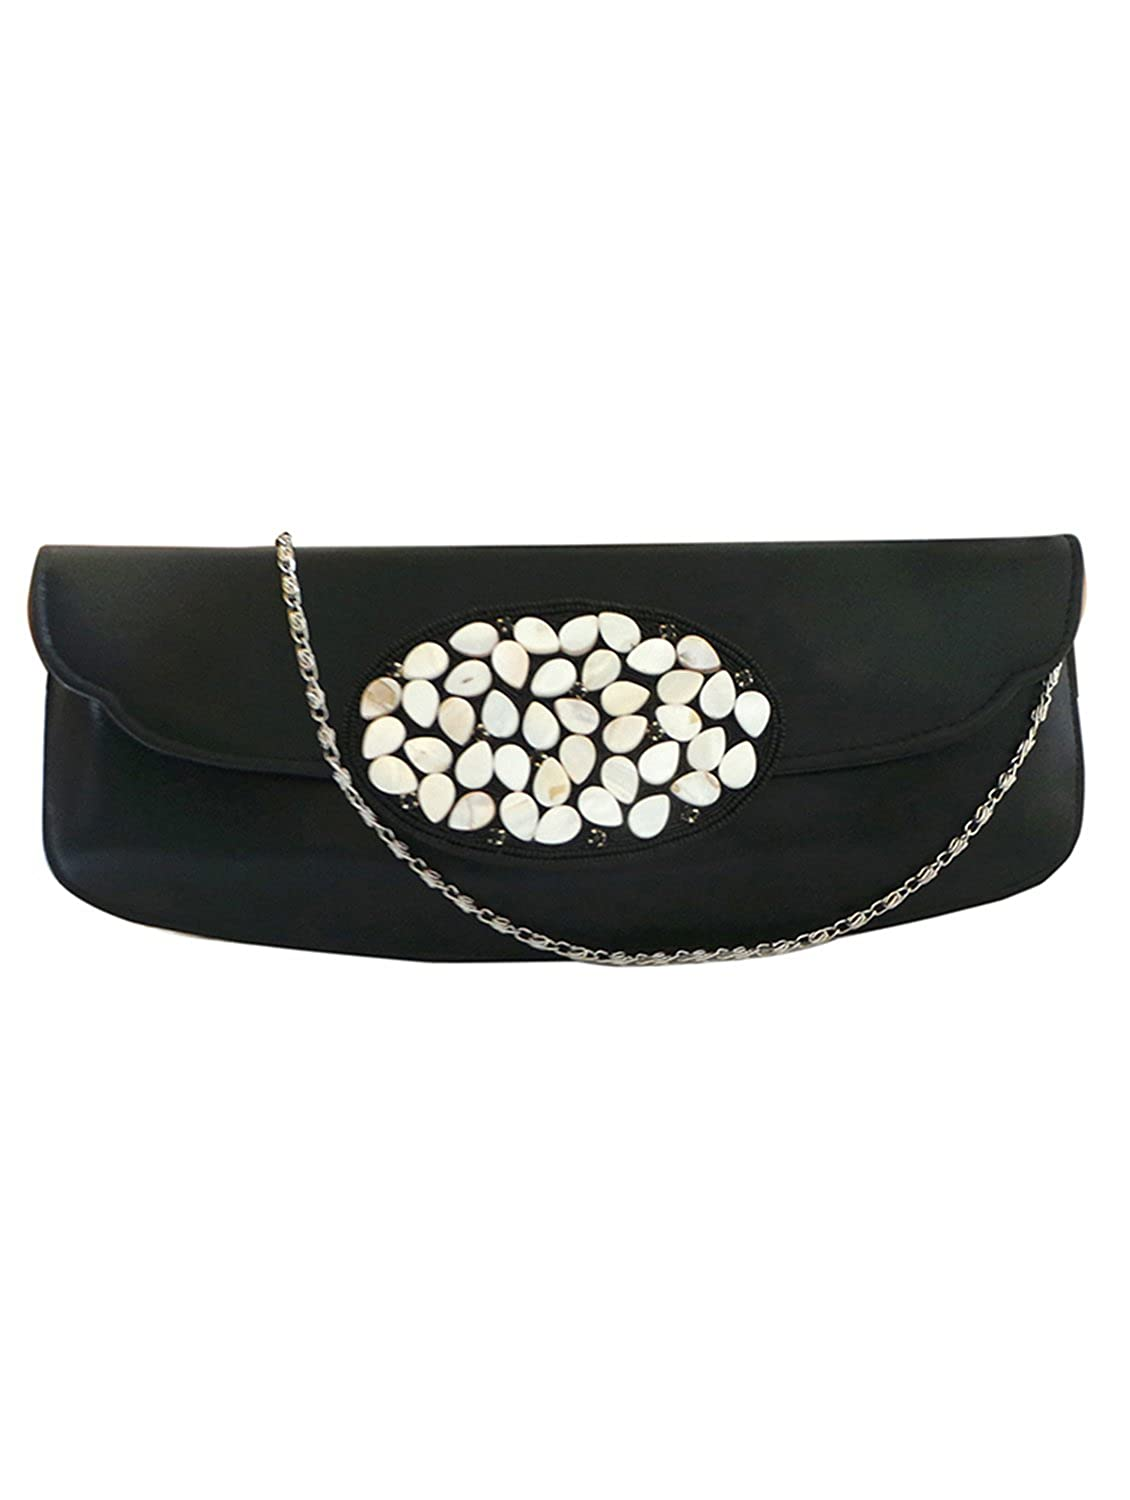 Bhamini Black Synthetic PU Clutch with Oval Shell Brooch